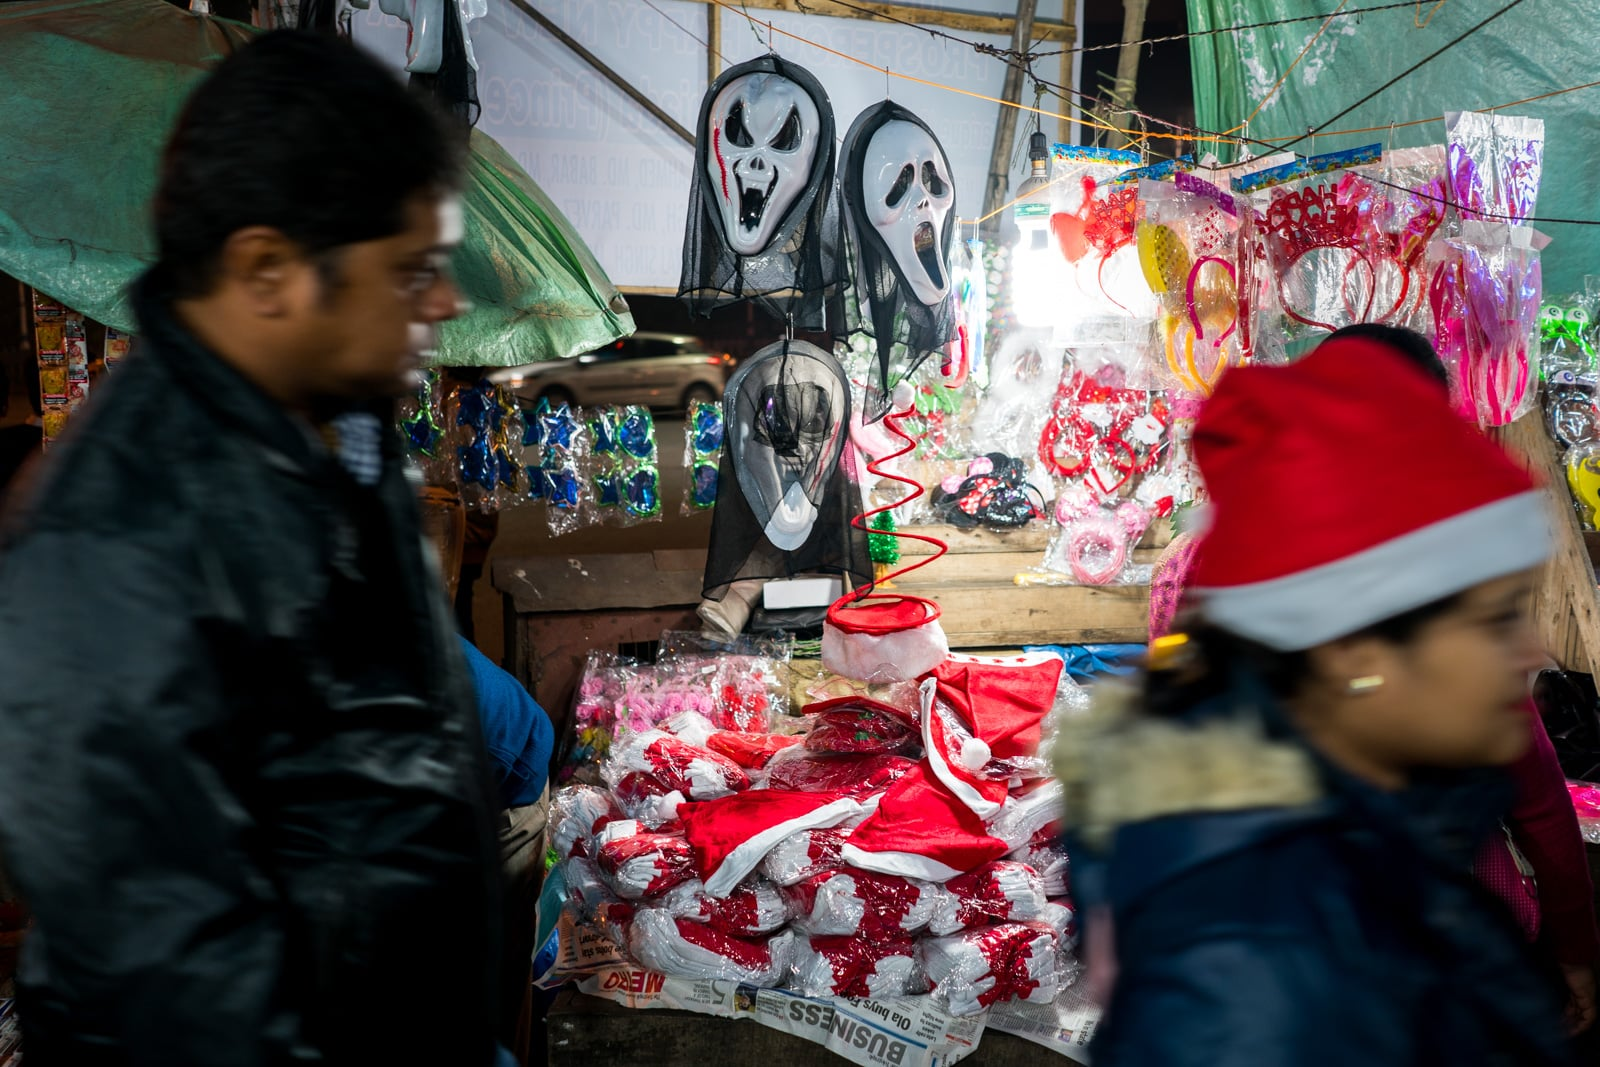 Celebrating Christmas in Kolkata, India - Scream masks on sale for Christmas - Lost With Purpose travel blog